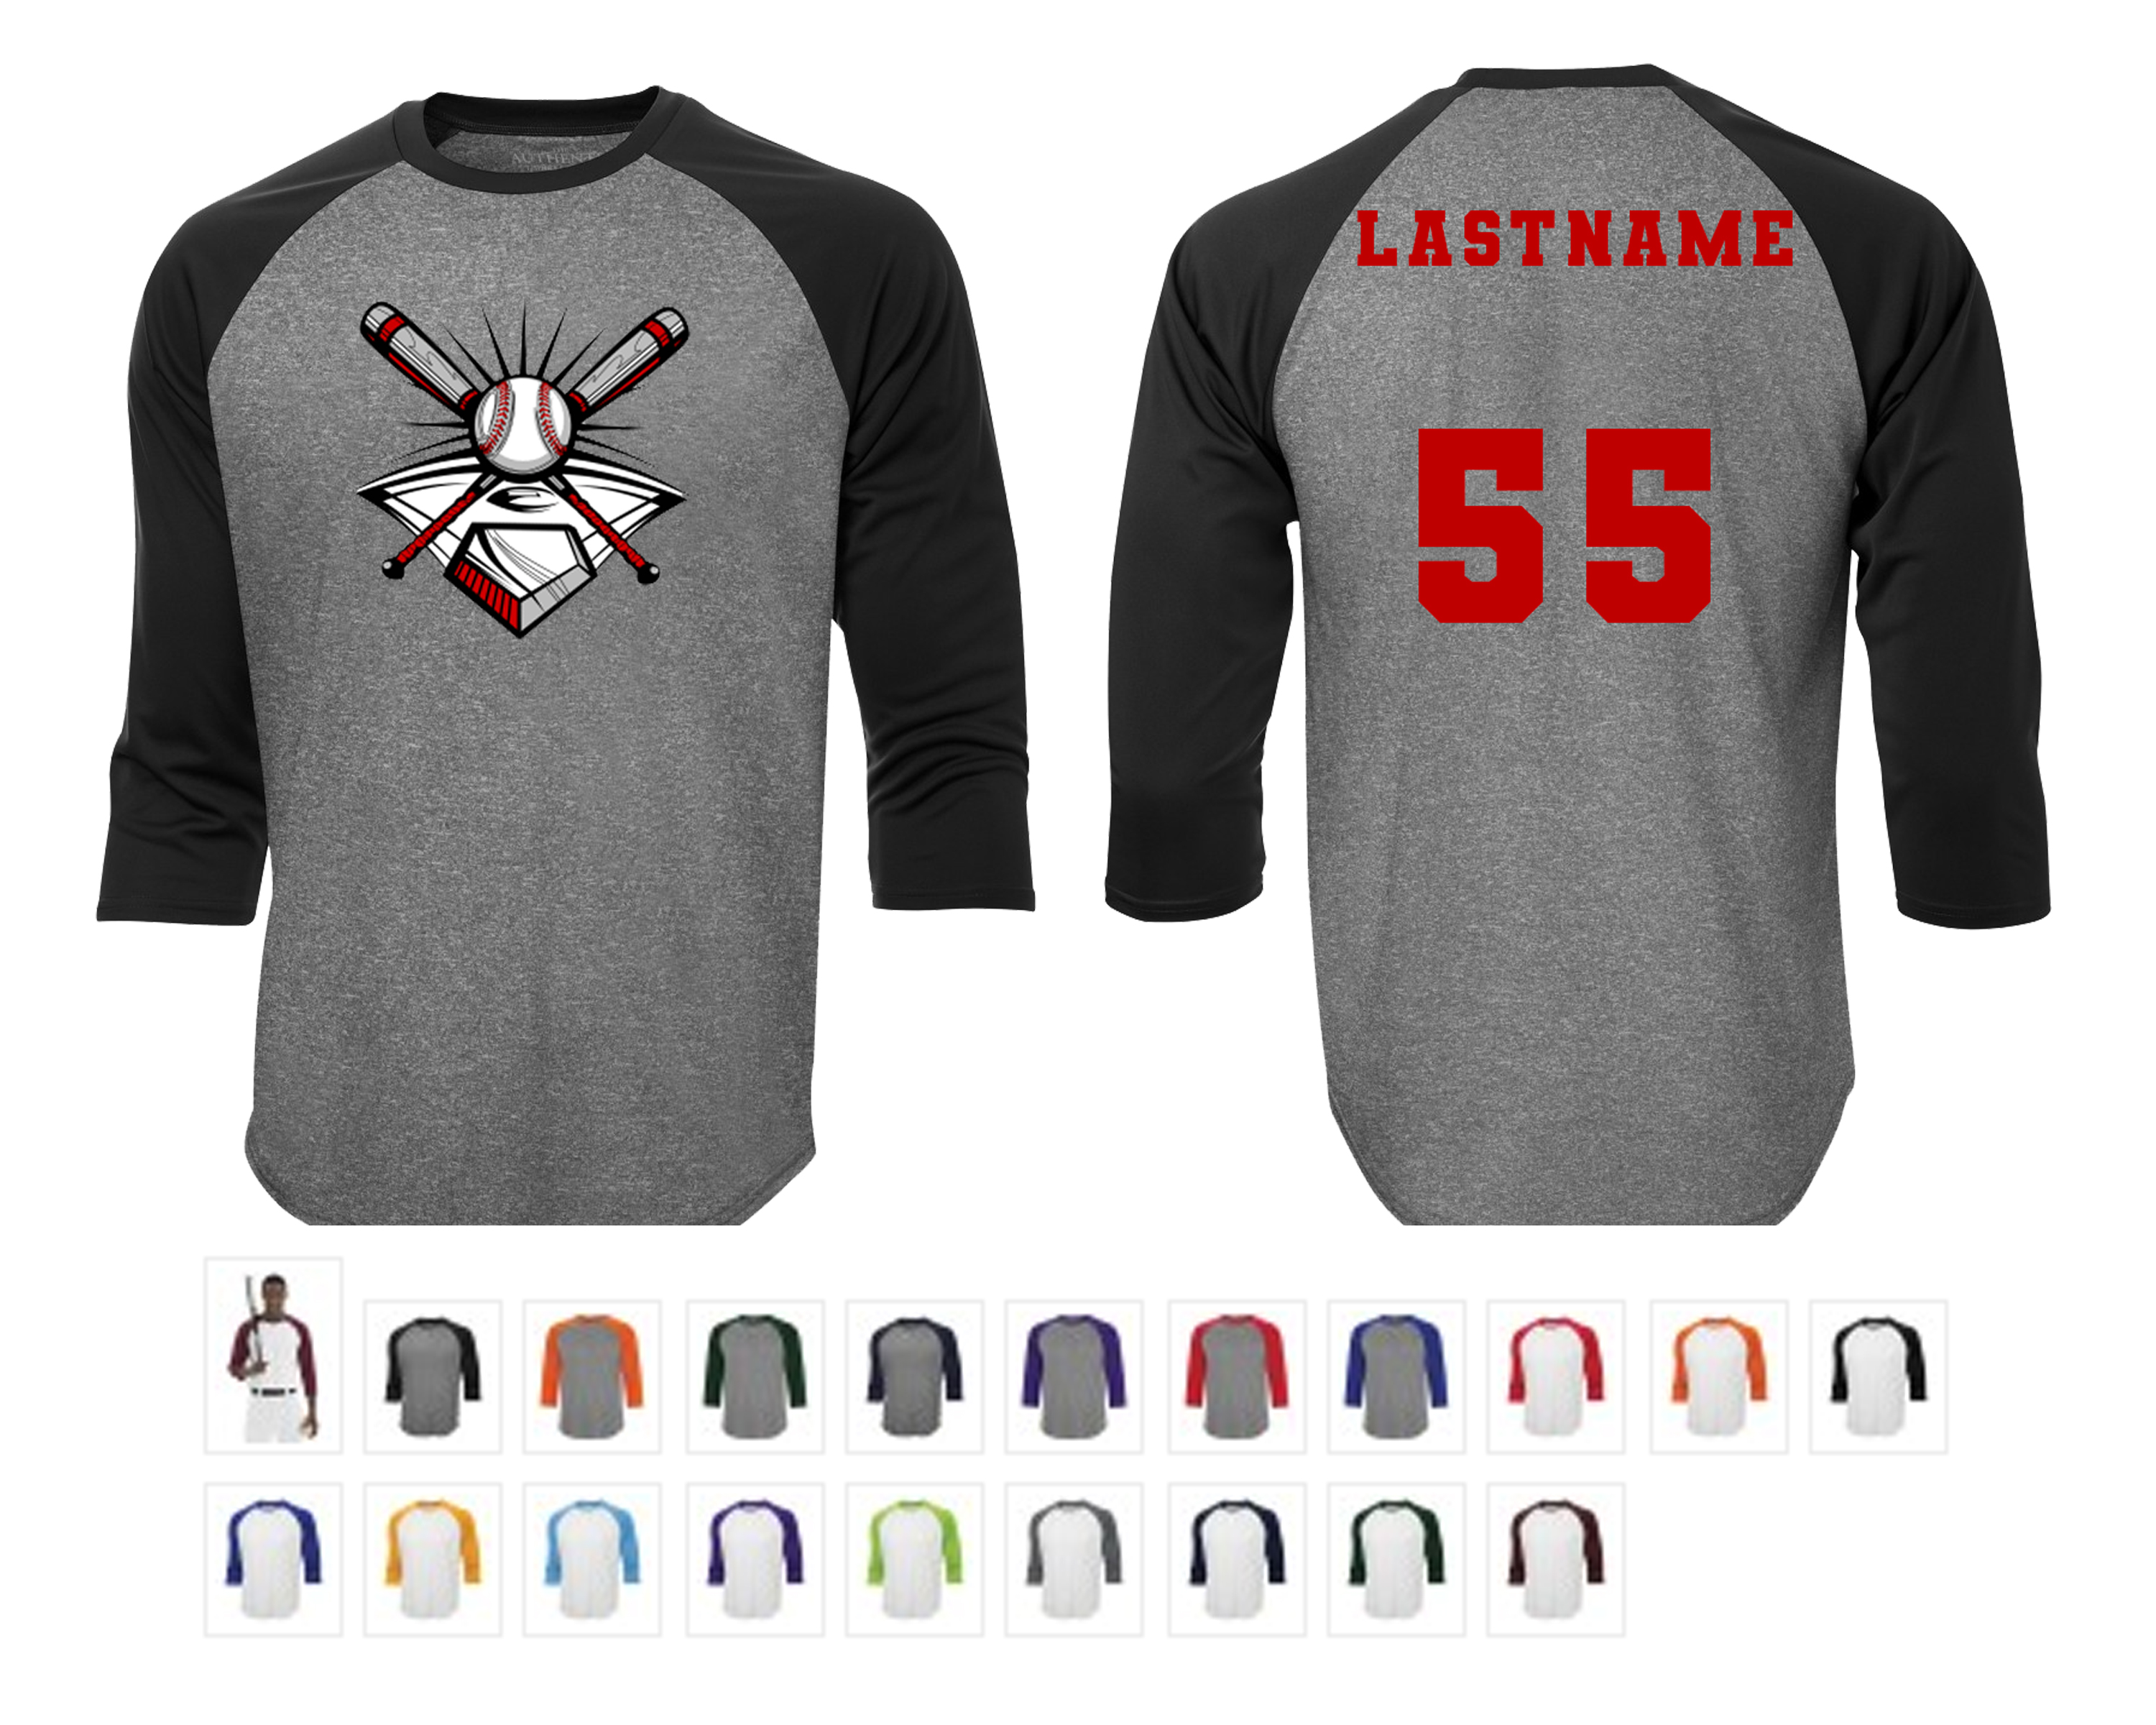 Baseball Tee (Dry fit style) With Last Name & Number